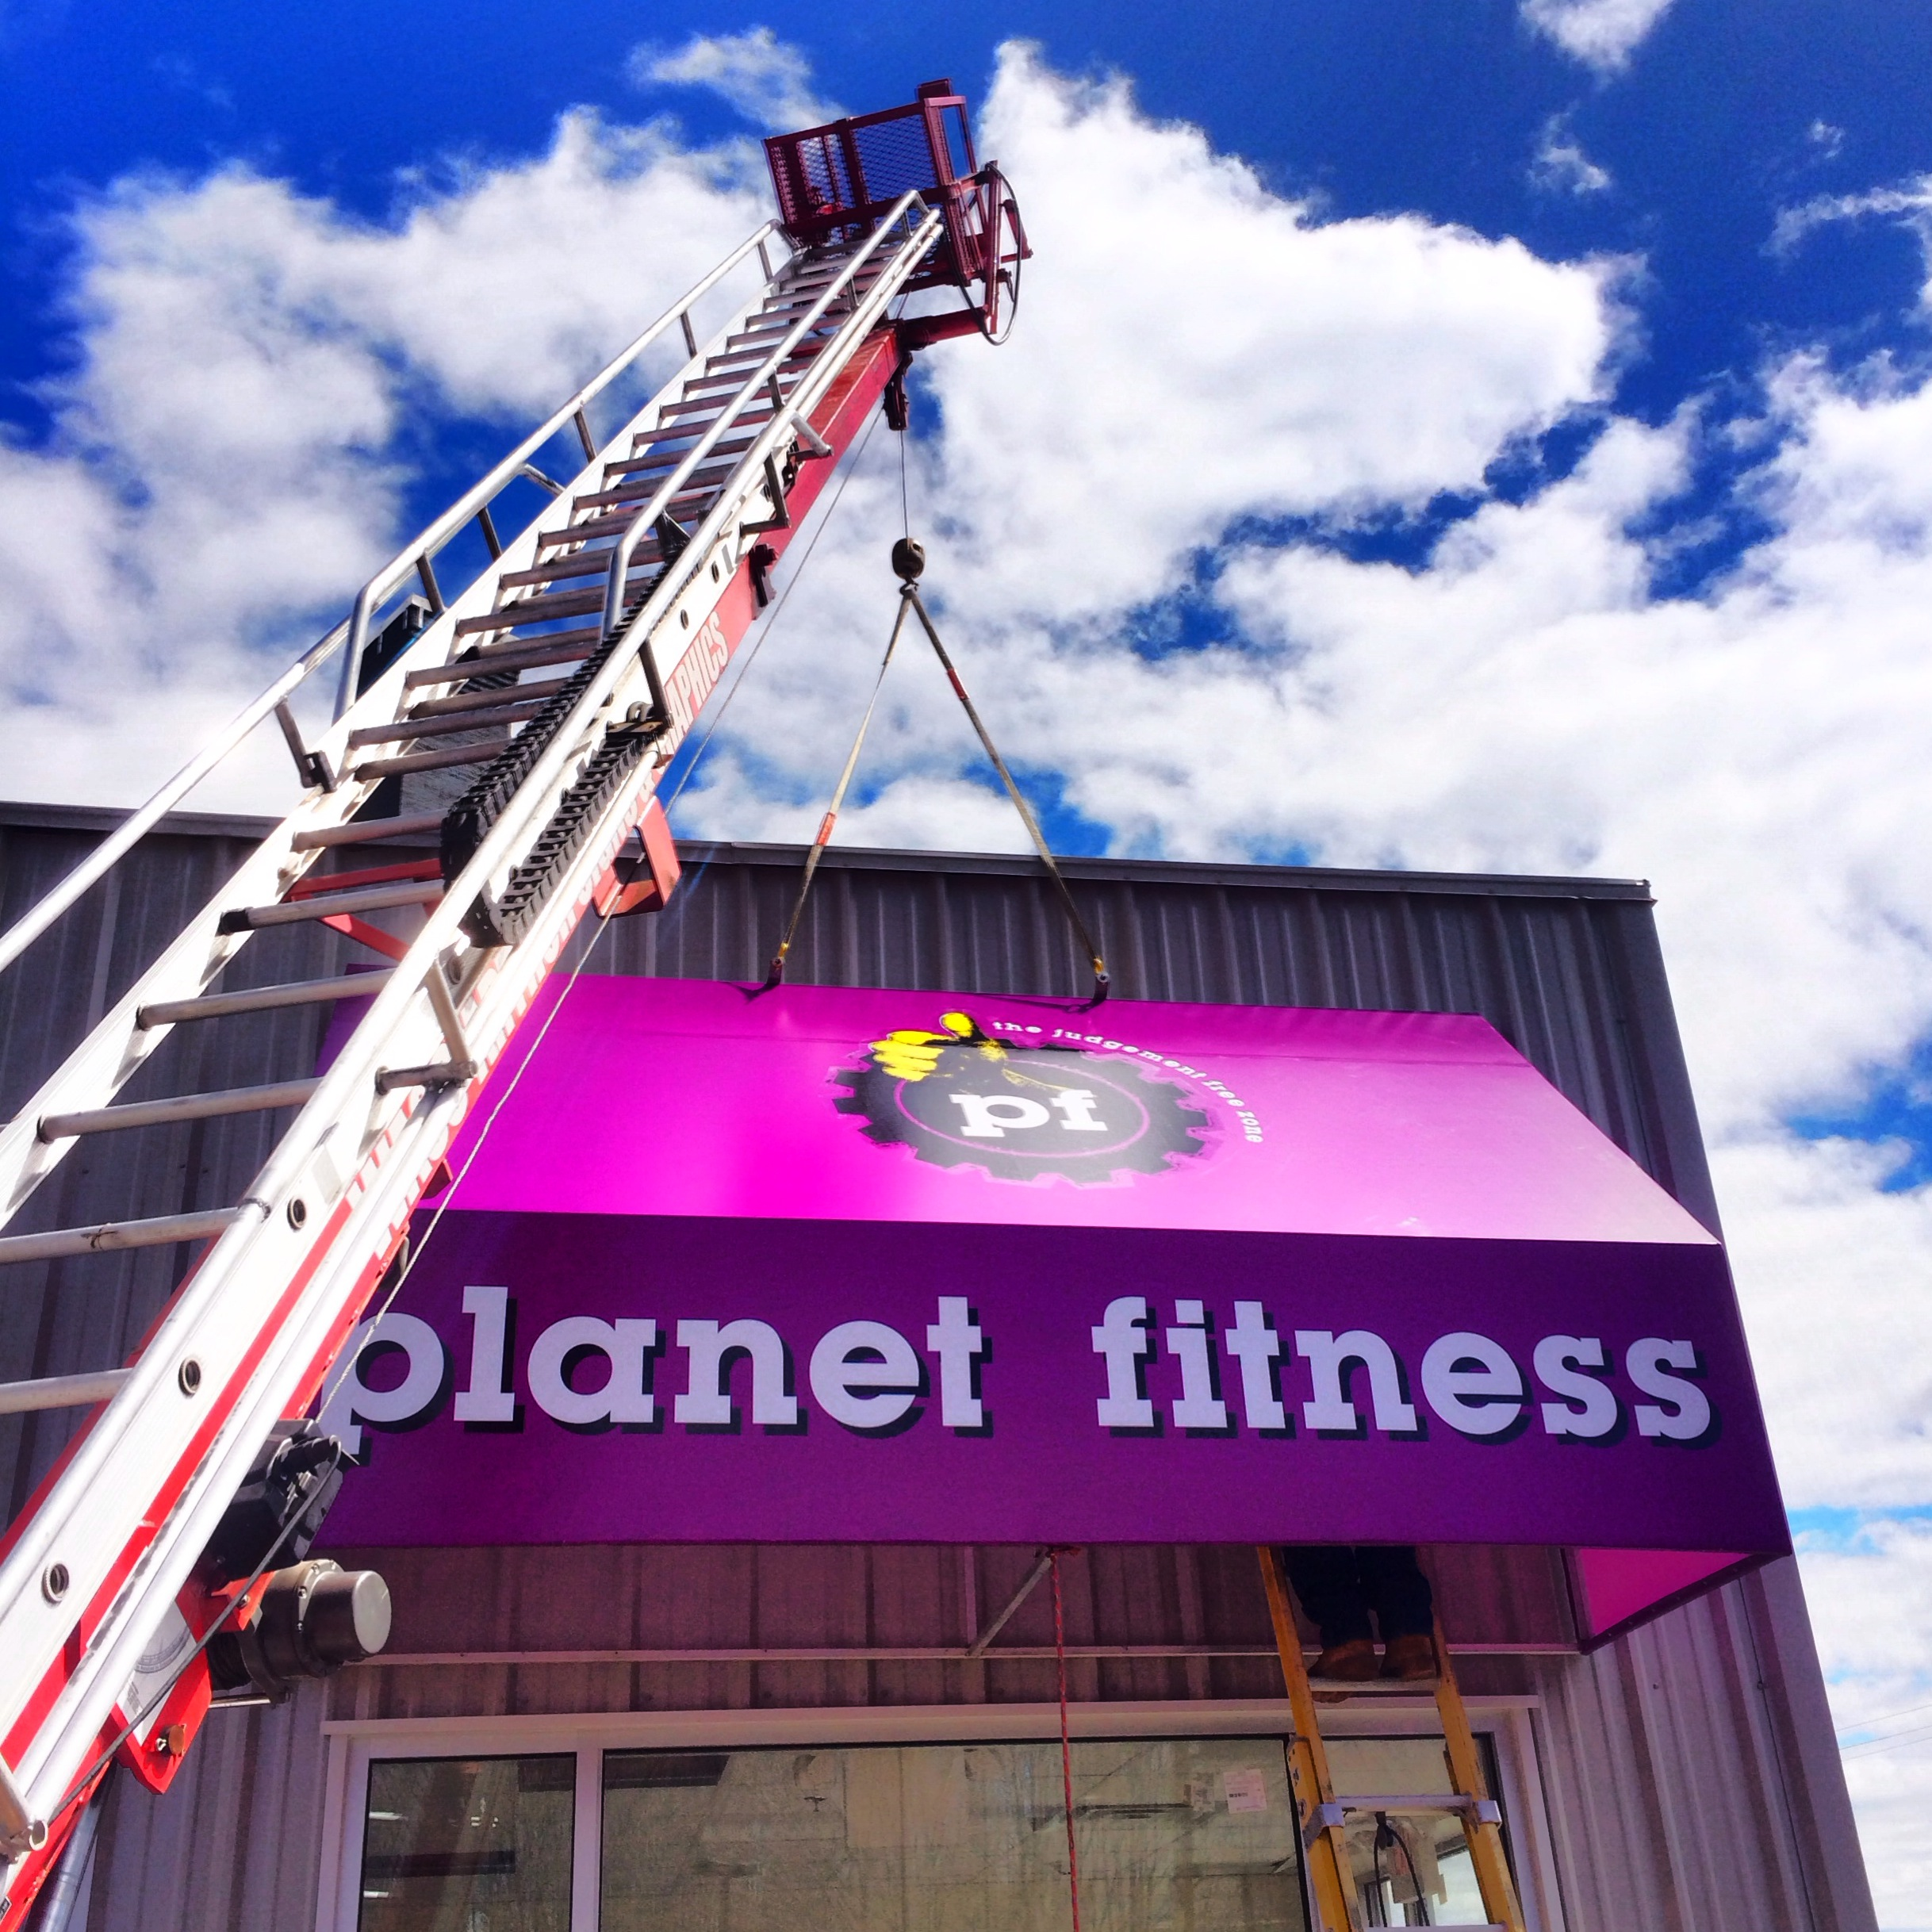 Planet Fitness Awning.JPG